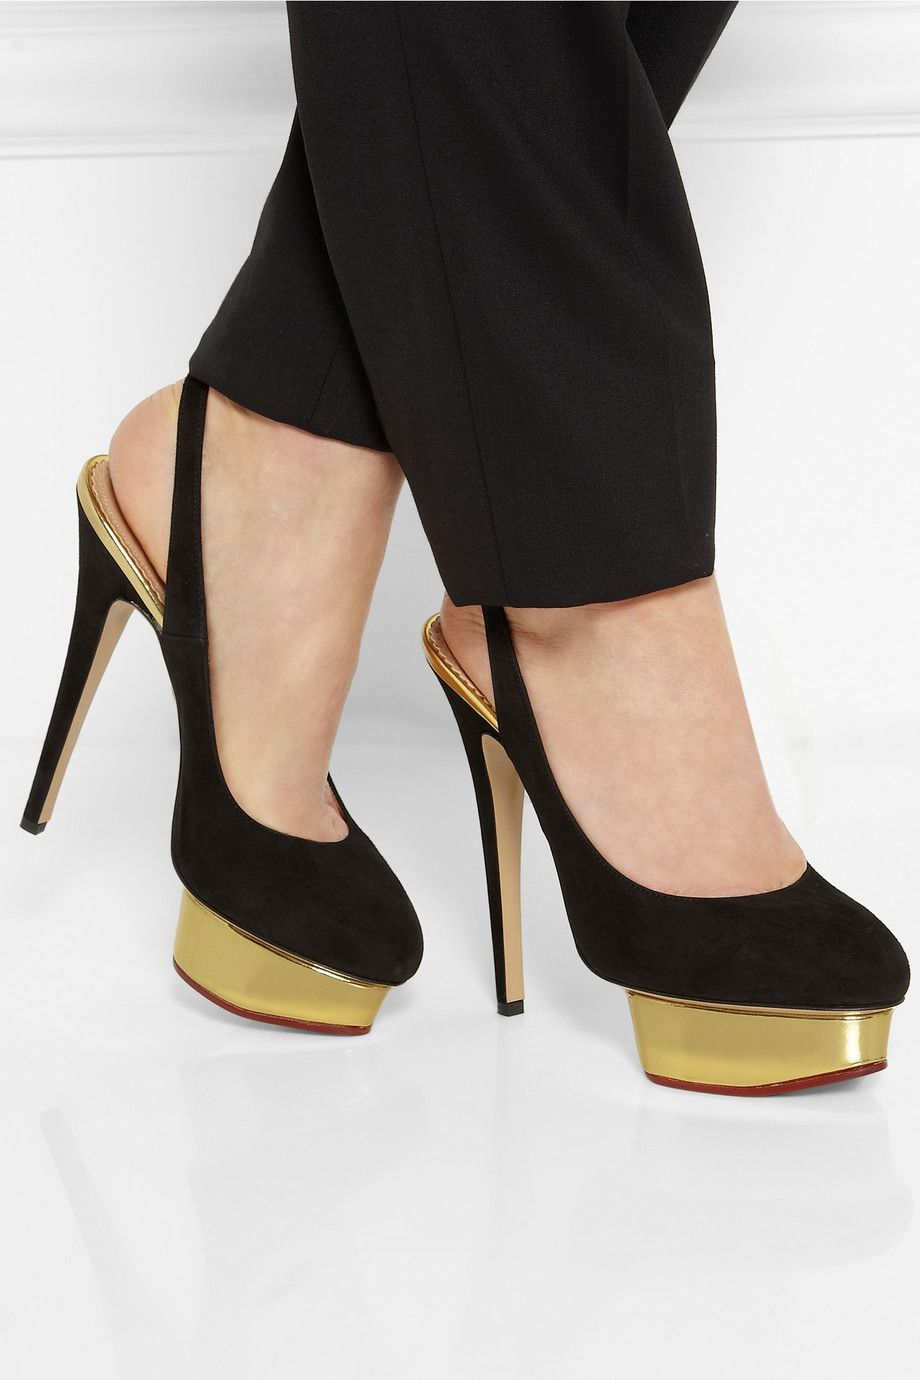 Charlotte Olympia Suede Slingback Pumps latest online fashionable for sale cbX6SN